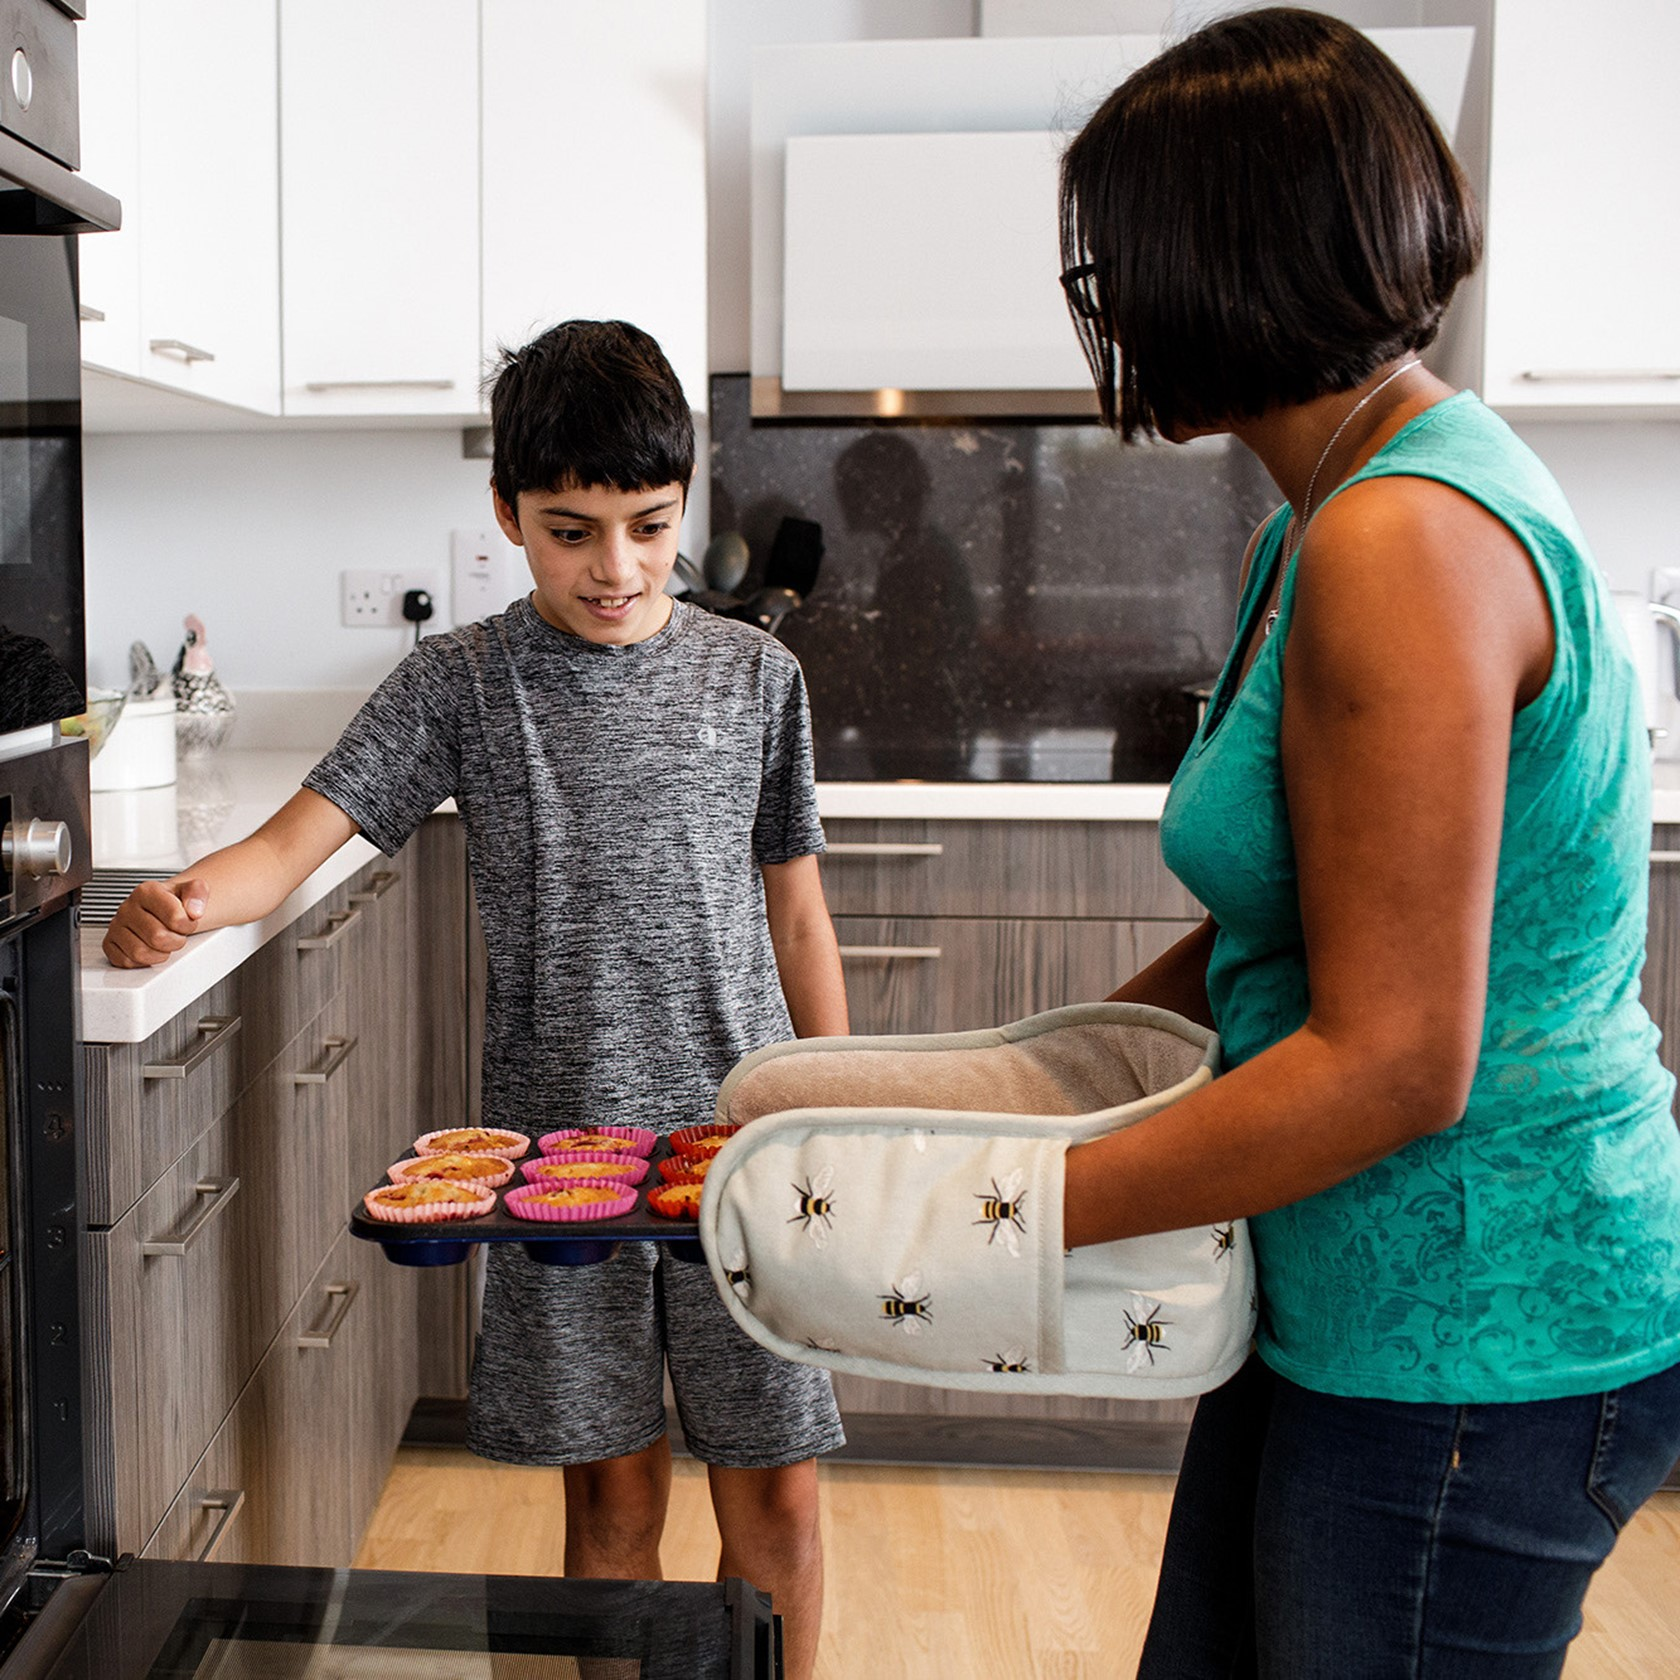 A mother removes her cupcakes from her electric oven as her son looks on.